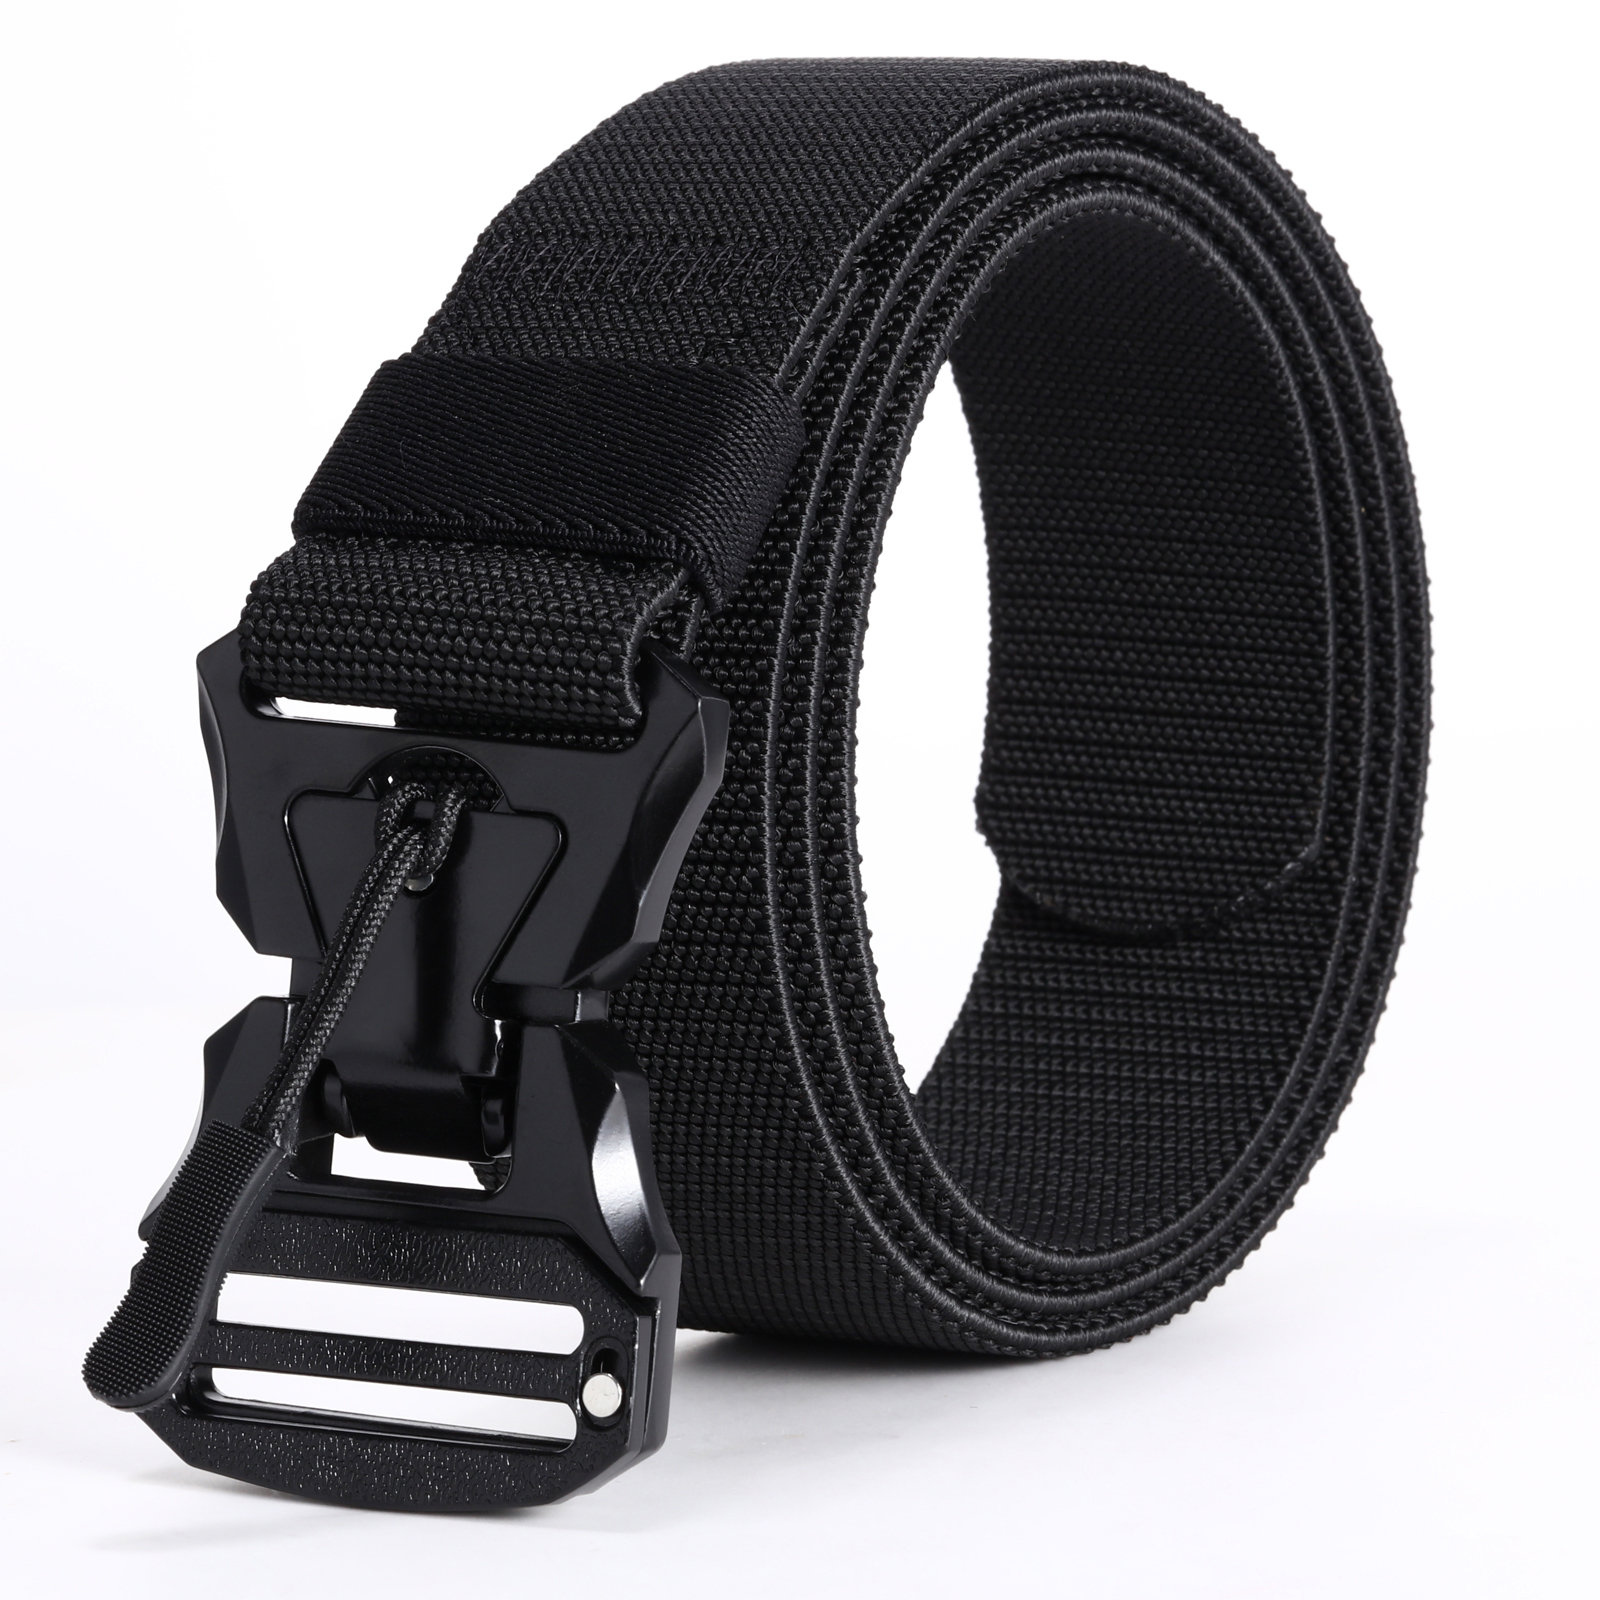 Hreamky Men Belt,military In The Wild Hunting Survival The Tactical Belt,Metal Magnet Buckle Automatic Tightening Belts